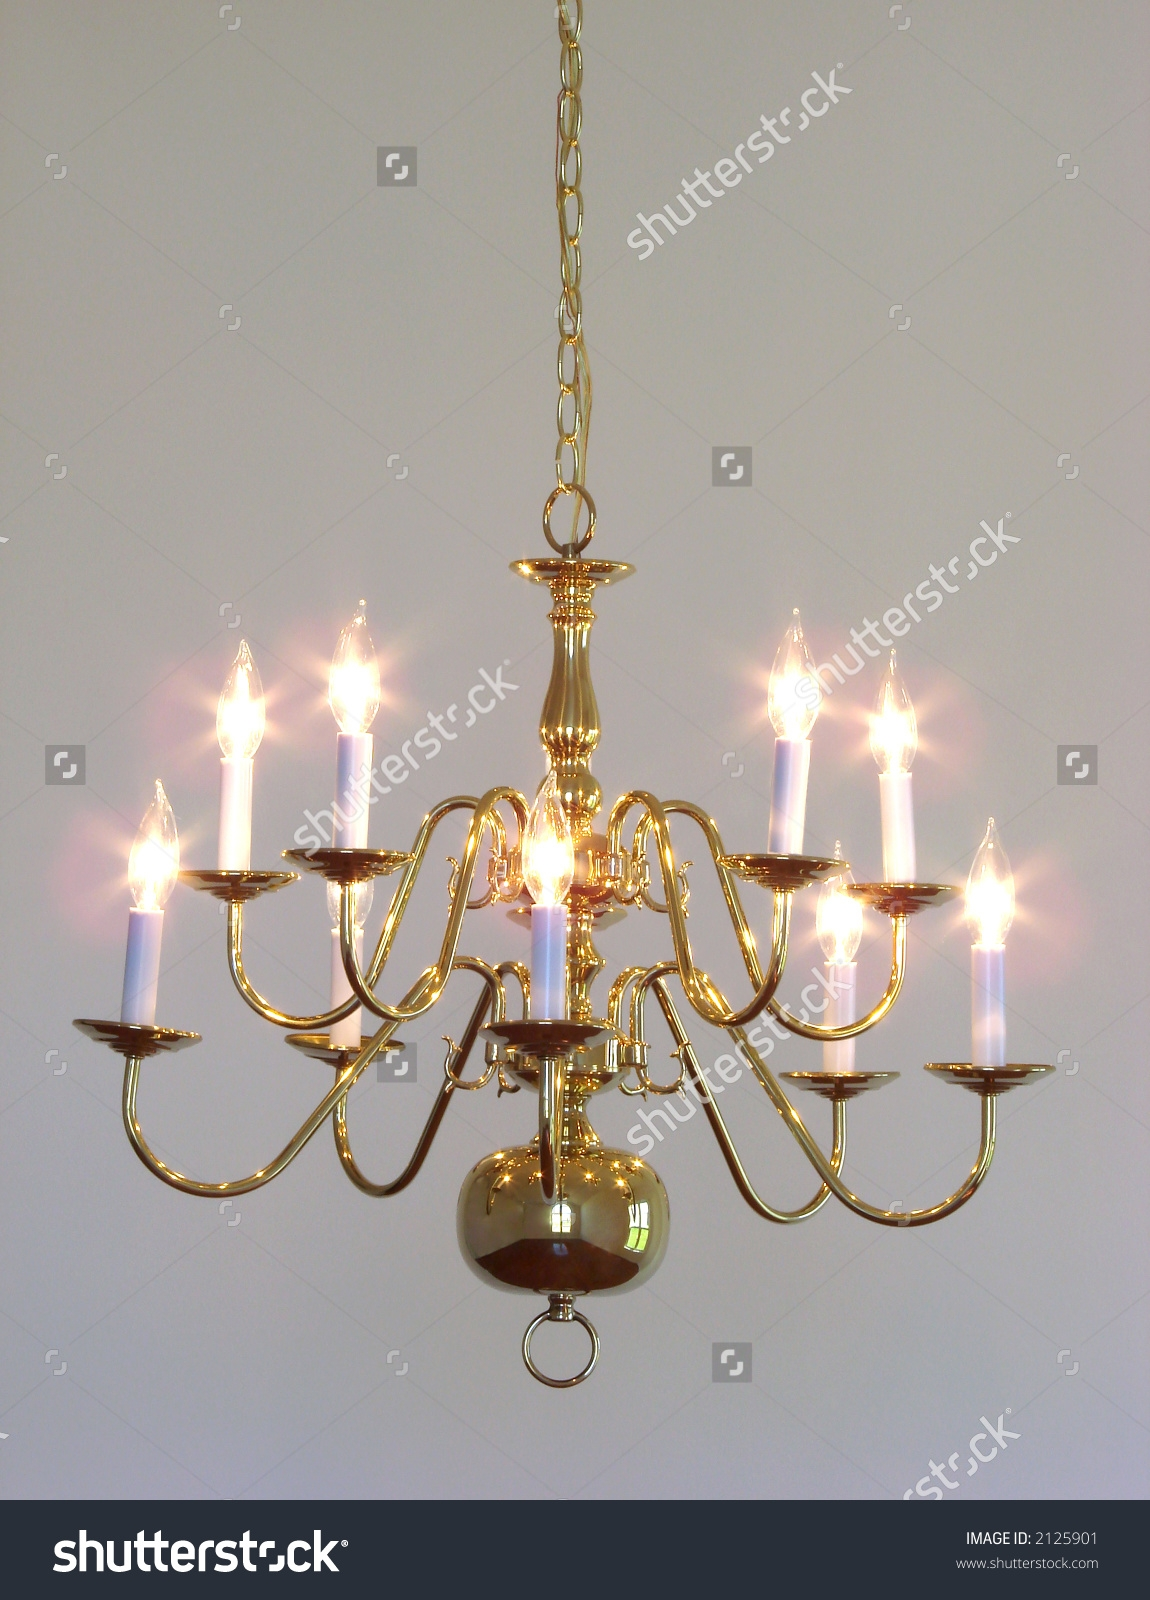 Featured Image of Traditional Brass Chandeliers